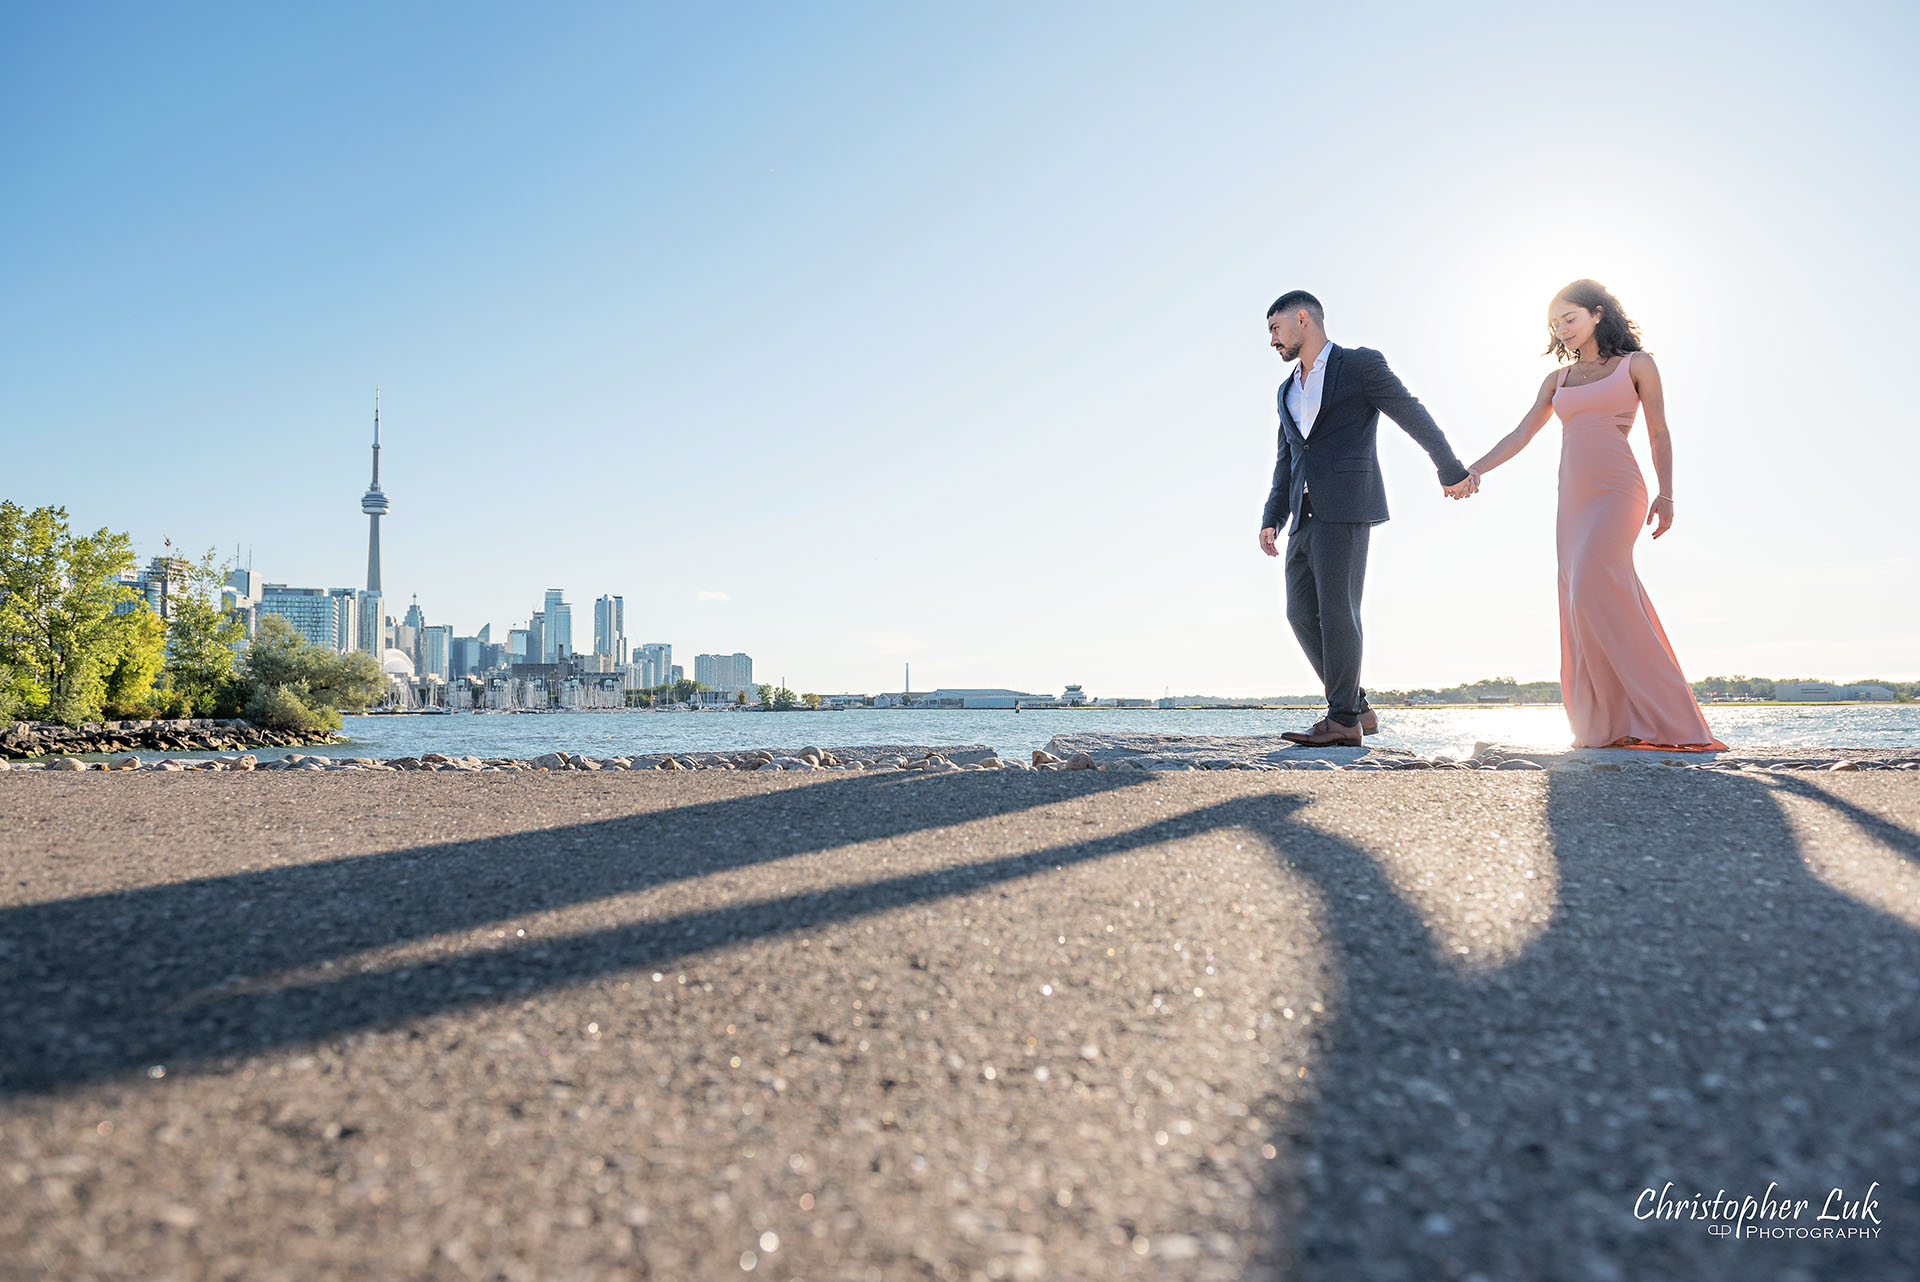 Christopher Luk Trillium Park Ontario Place Waterfront Engagement Session Toronto Wedding Photographer Bride Groom Natural Candid Photojournalistic CN Tower Skyline Background Sunrise Walkway Pathway Shadows